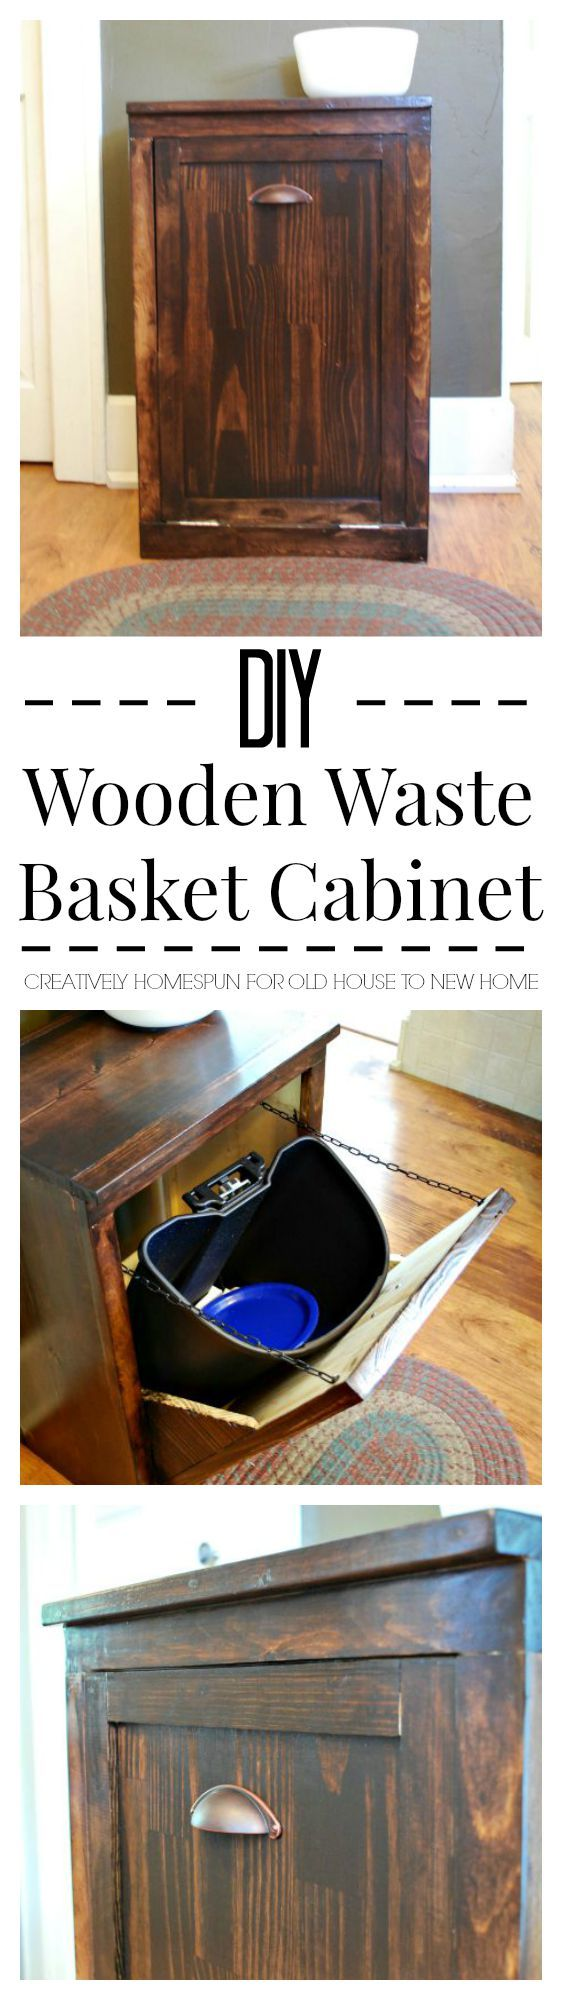 Wooden Wastebasket Diy Wooden Wastebasket Cabinet  Pinterest  Easy Kitchens And House